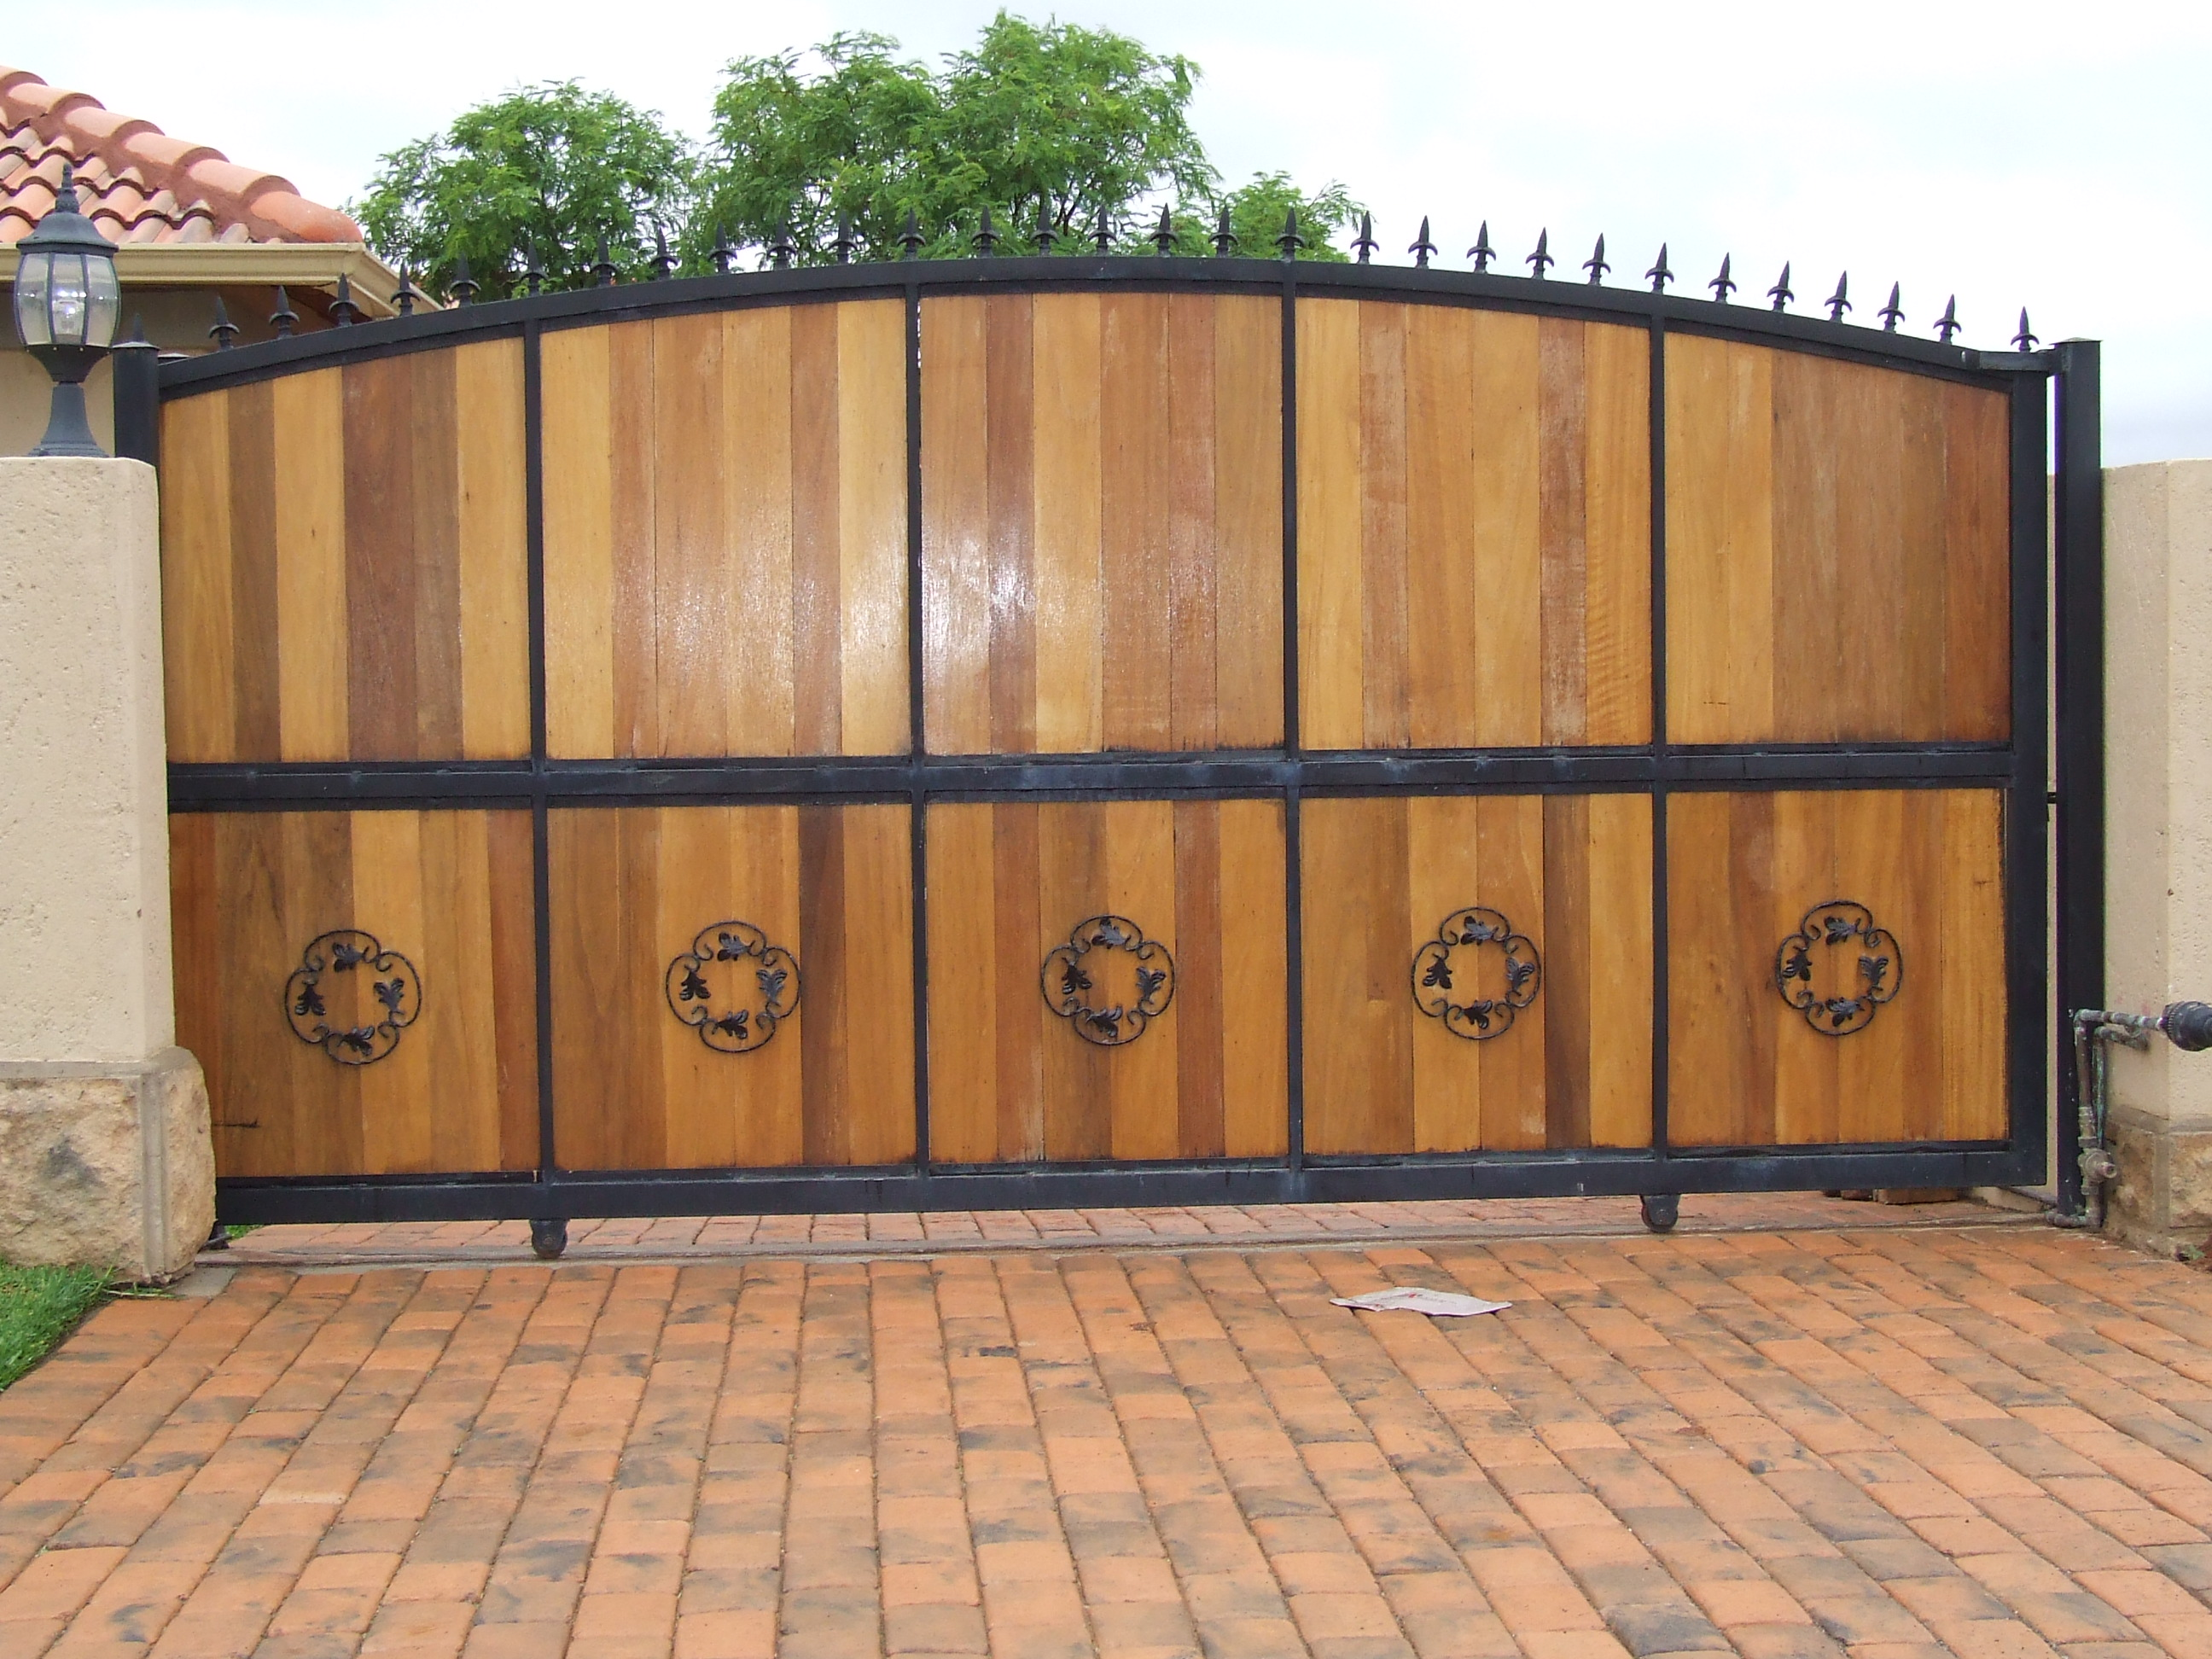 Philippines Steel Gate Design 2014 | Joy Studio Design Gallery - Best ...